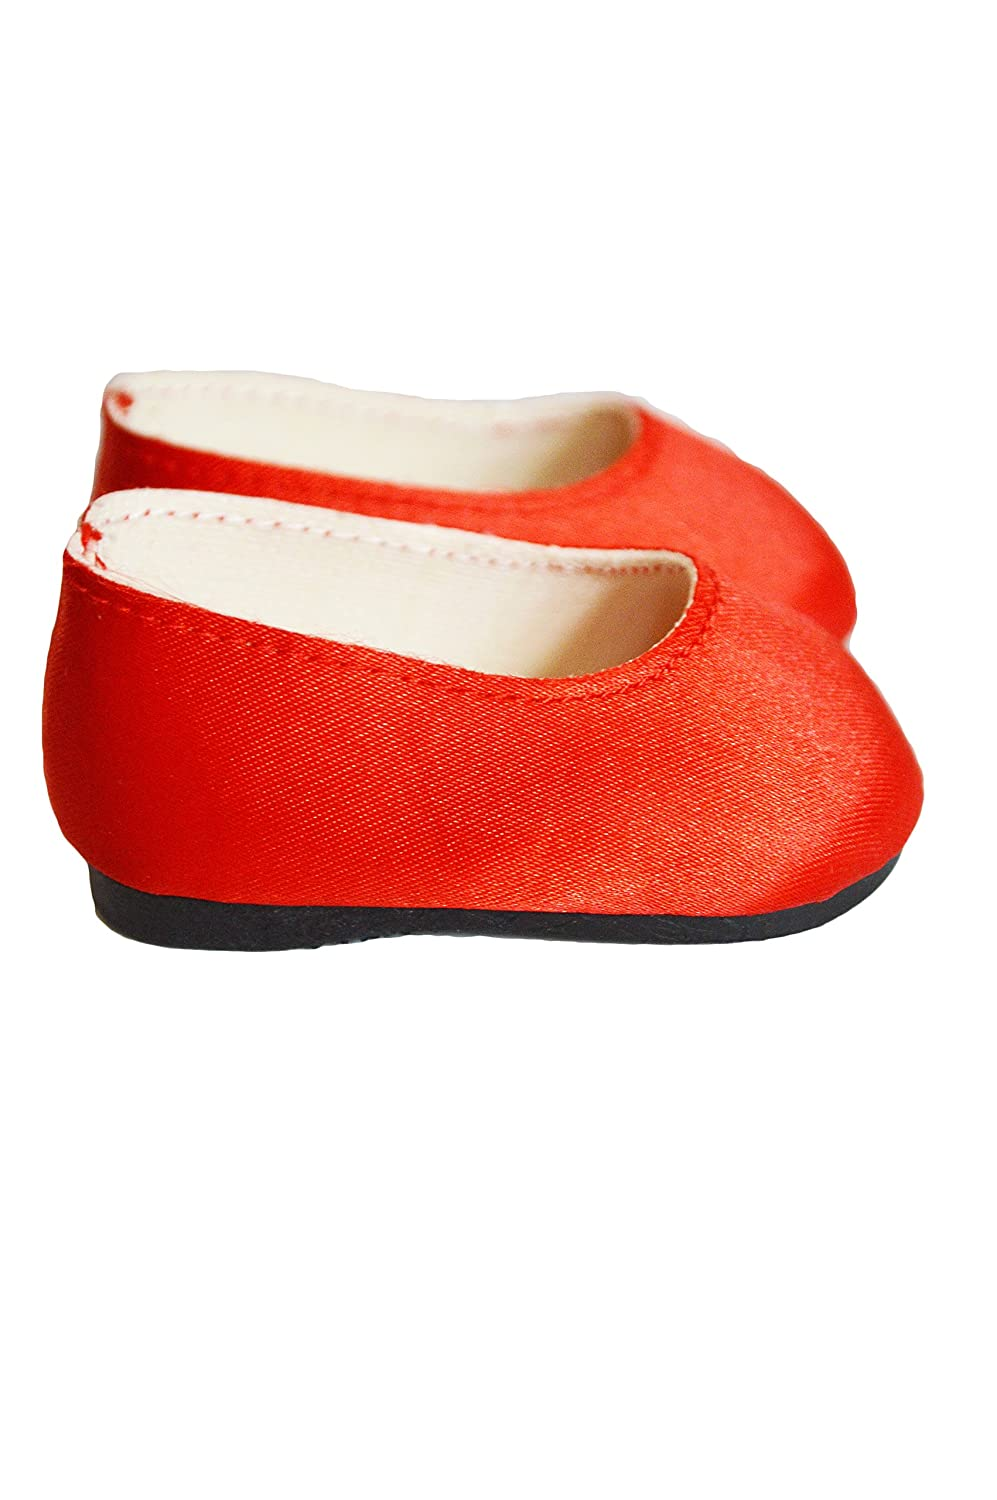 Brittanys My Red Satin Flats Compatible with Wellie Wisher and Glitter Girl Dolls